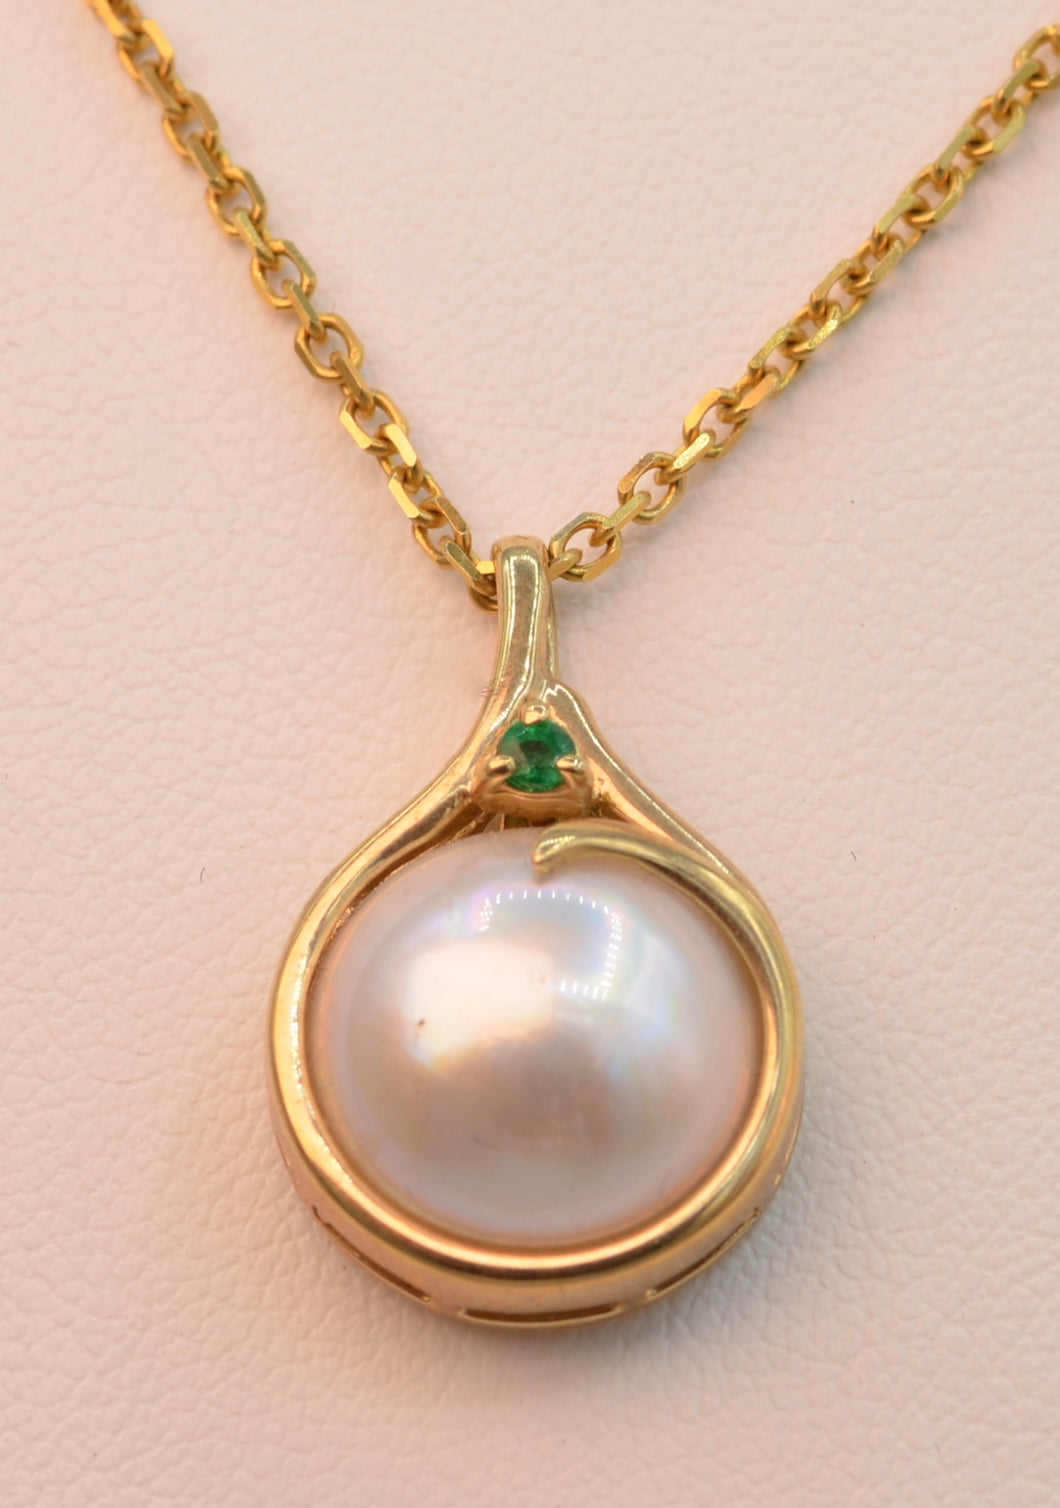 14K yellow gold Moby Pearl pendant with 15mm Moby Pearl and one deep green Emerald trim